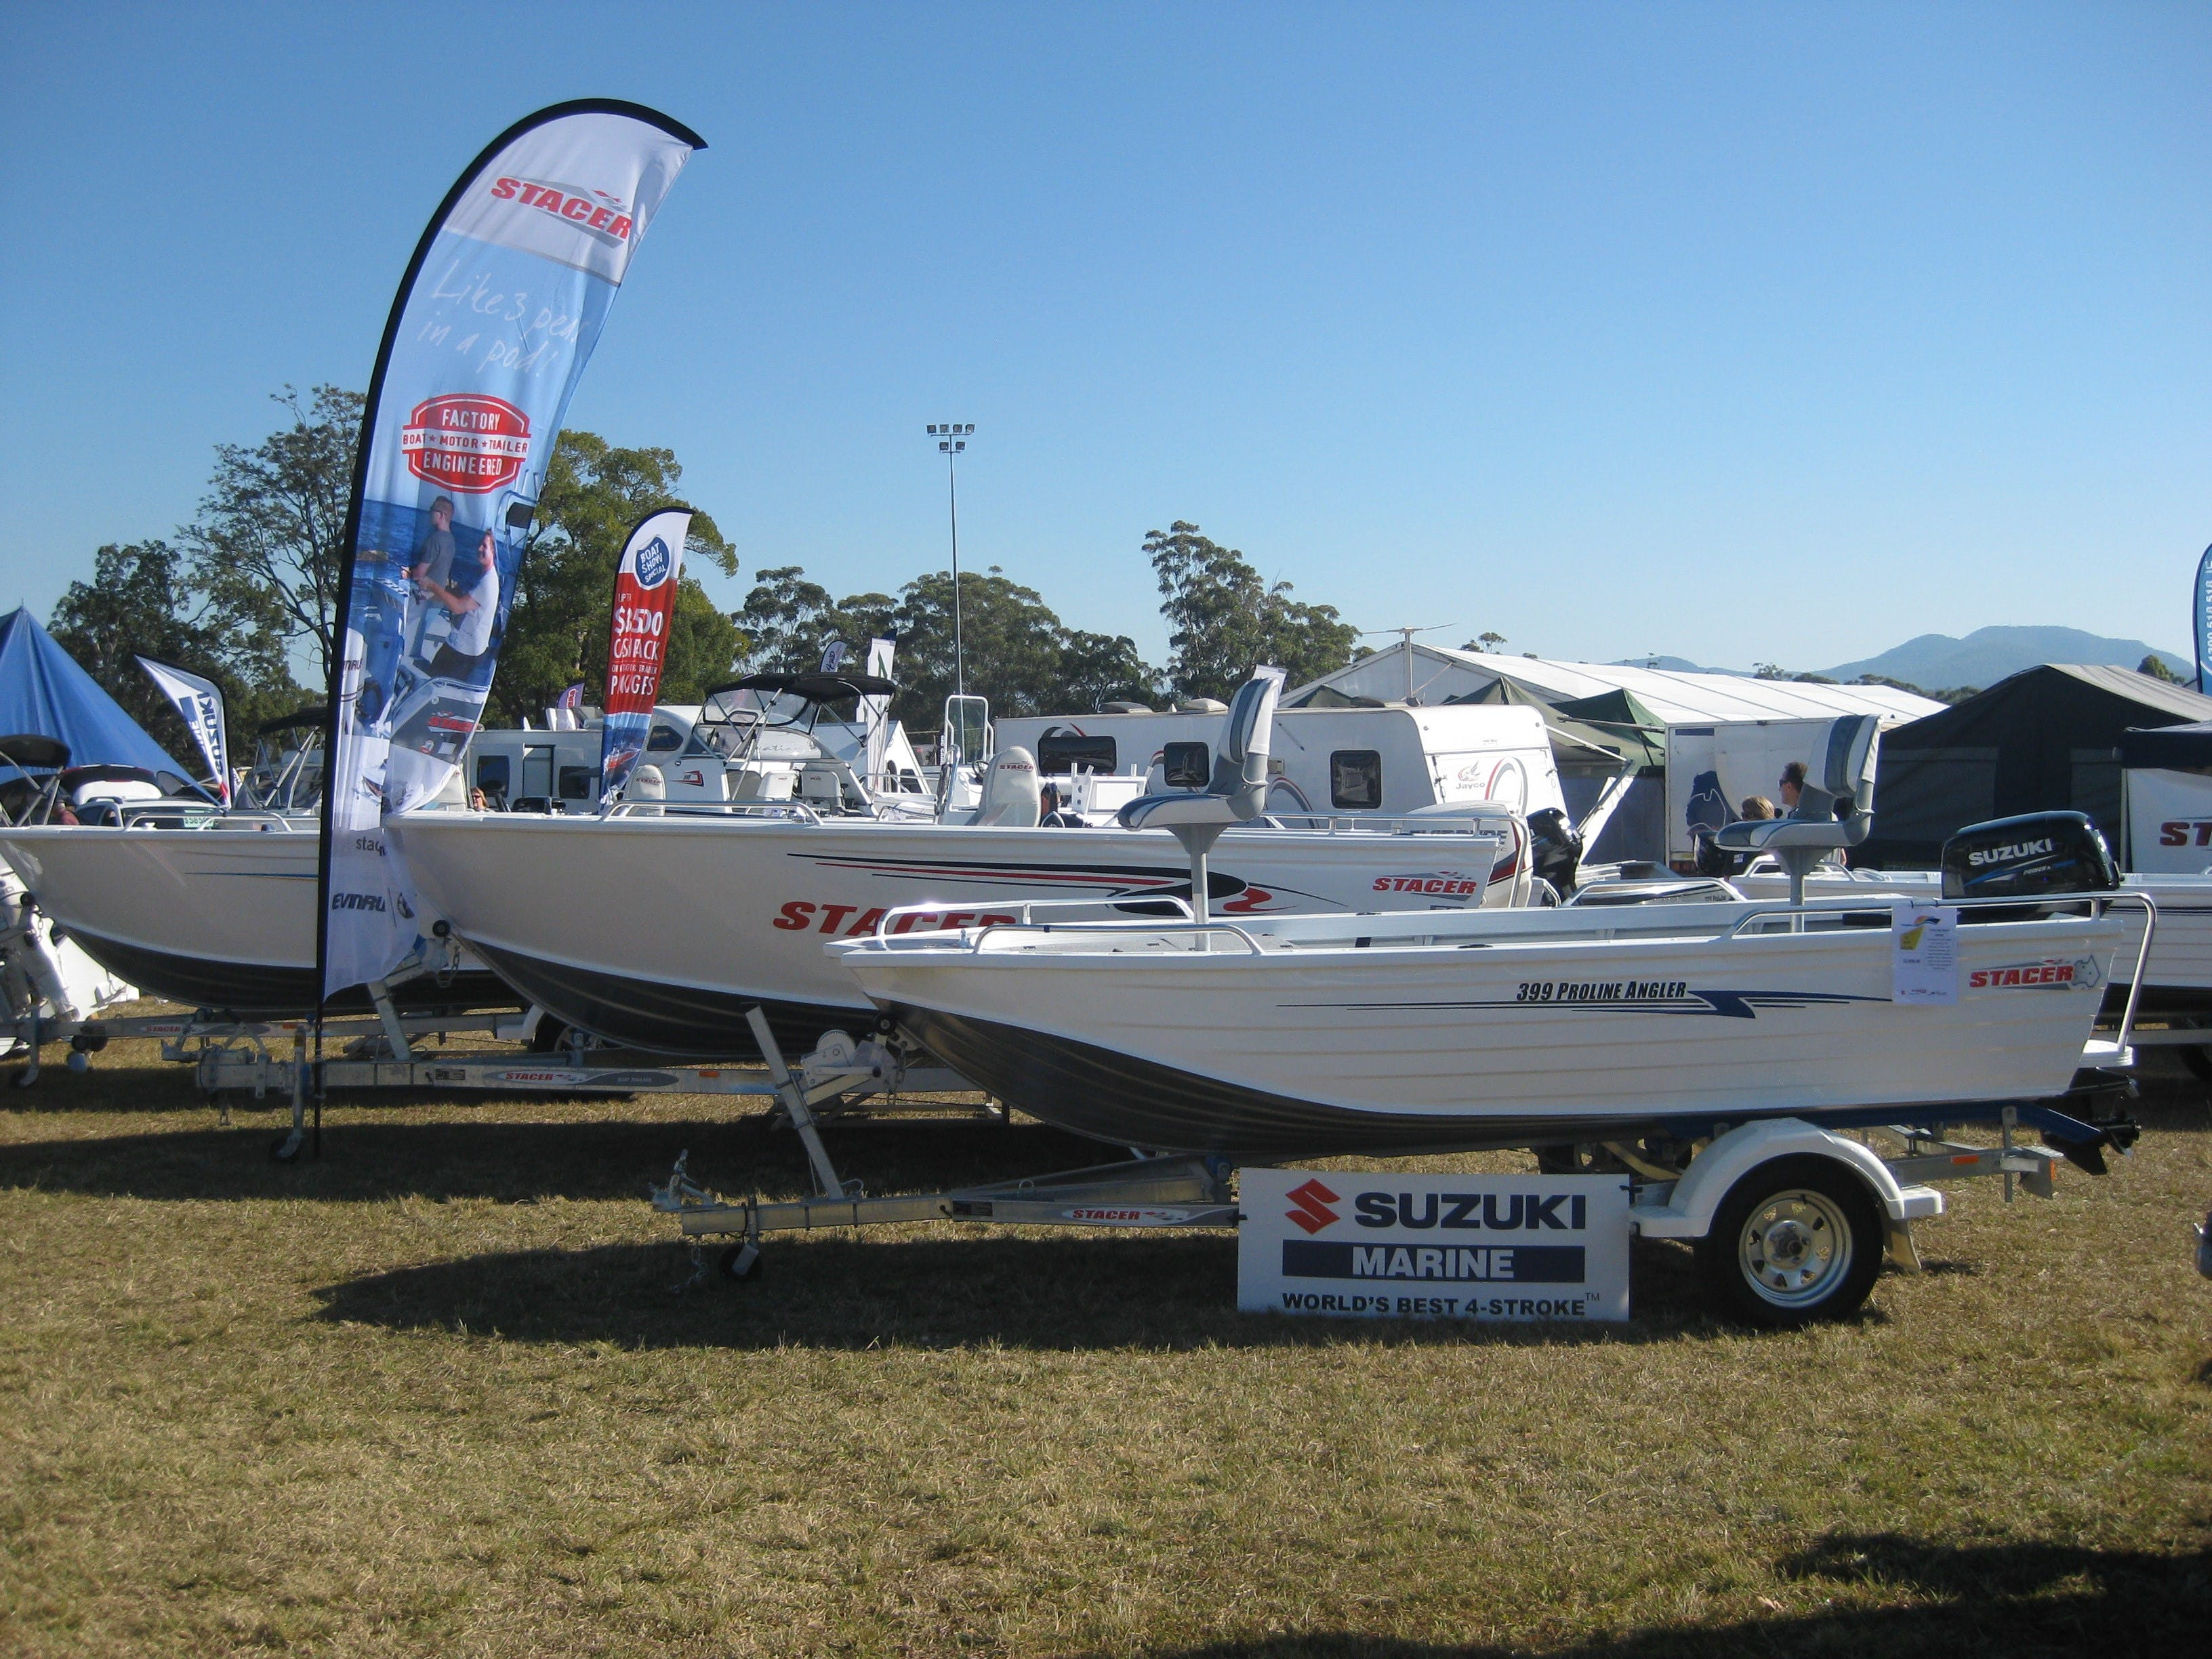 Mid North Coast Caravan Camping 4WD Fish and Boat Show - Wagga Wagga Accommodation